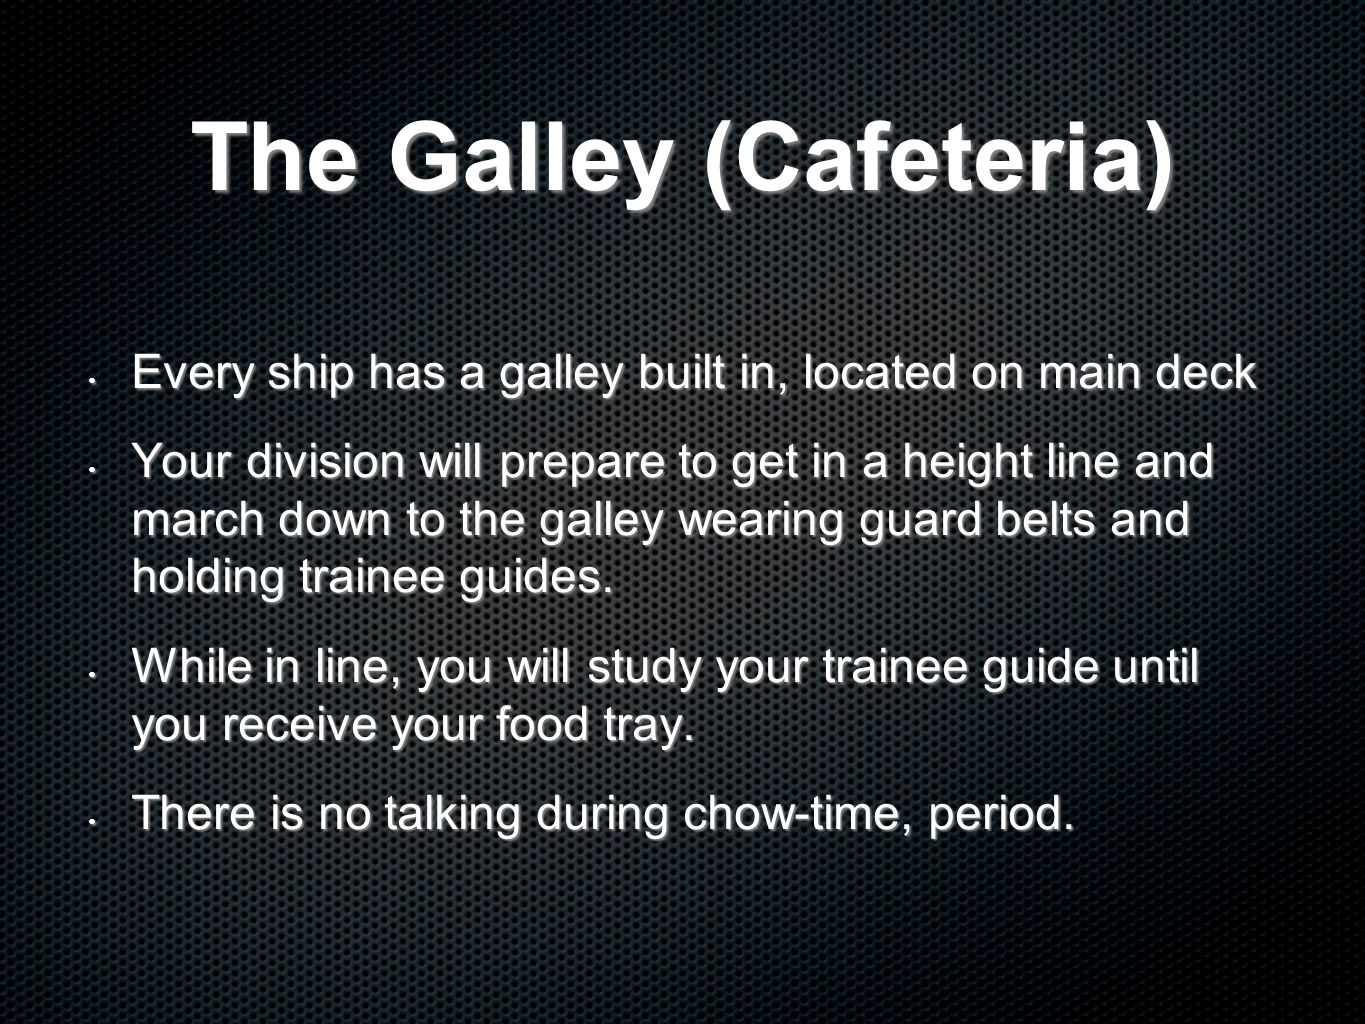 The Galley (Cafeteria)